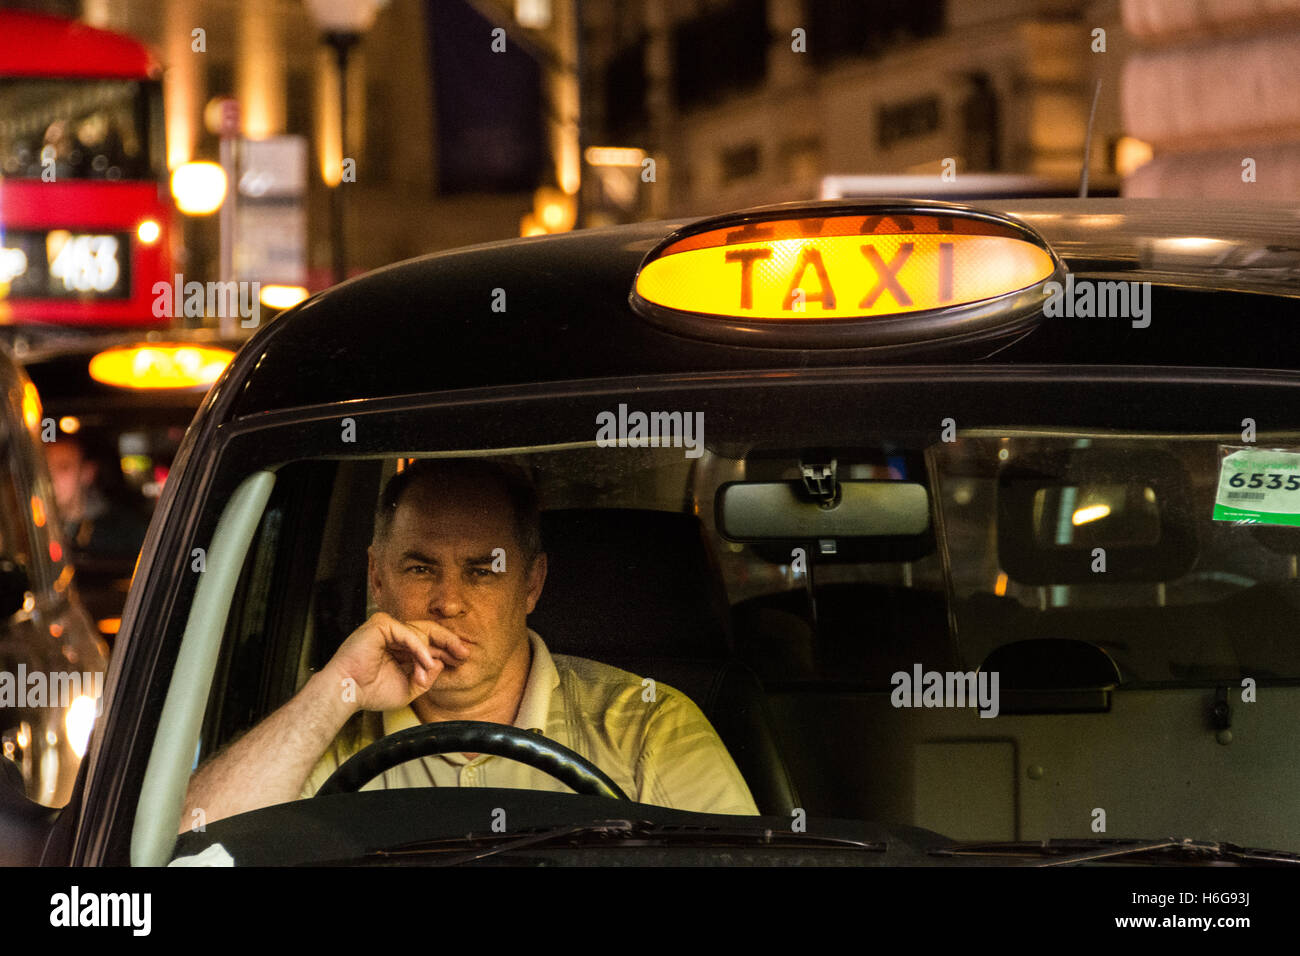 Taxi drivers in London's West End - Stock Image